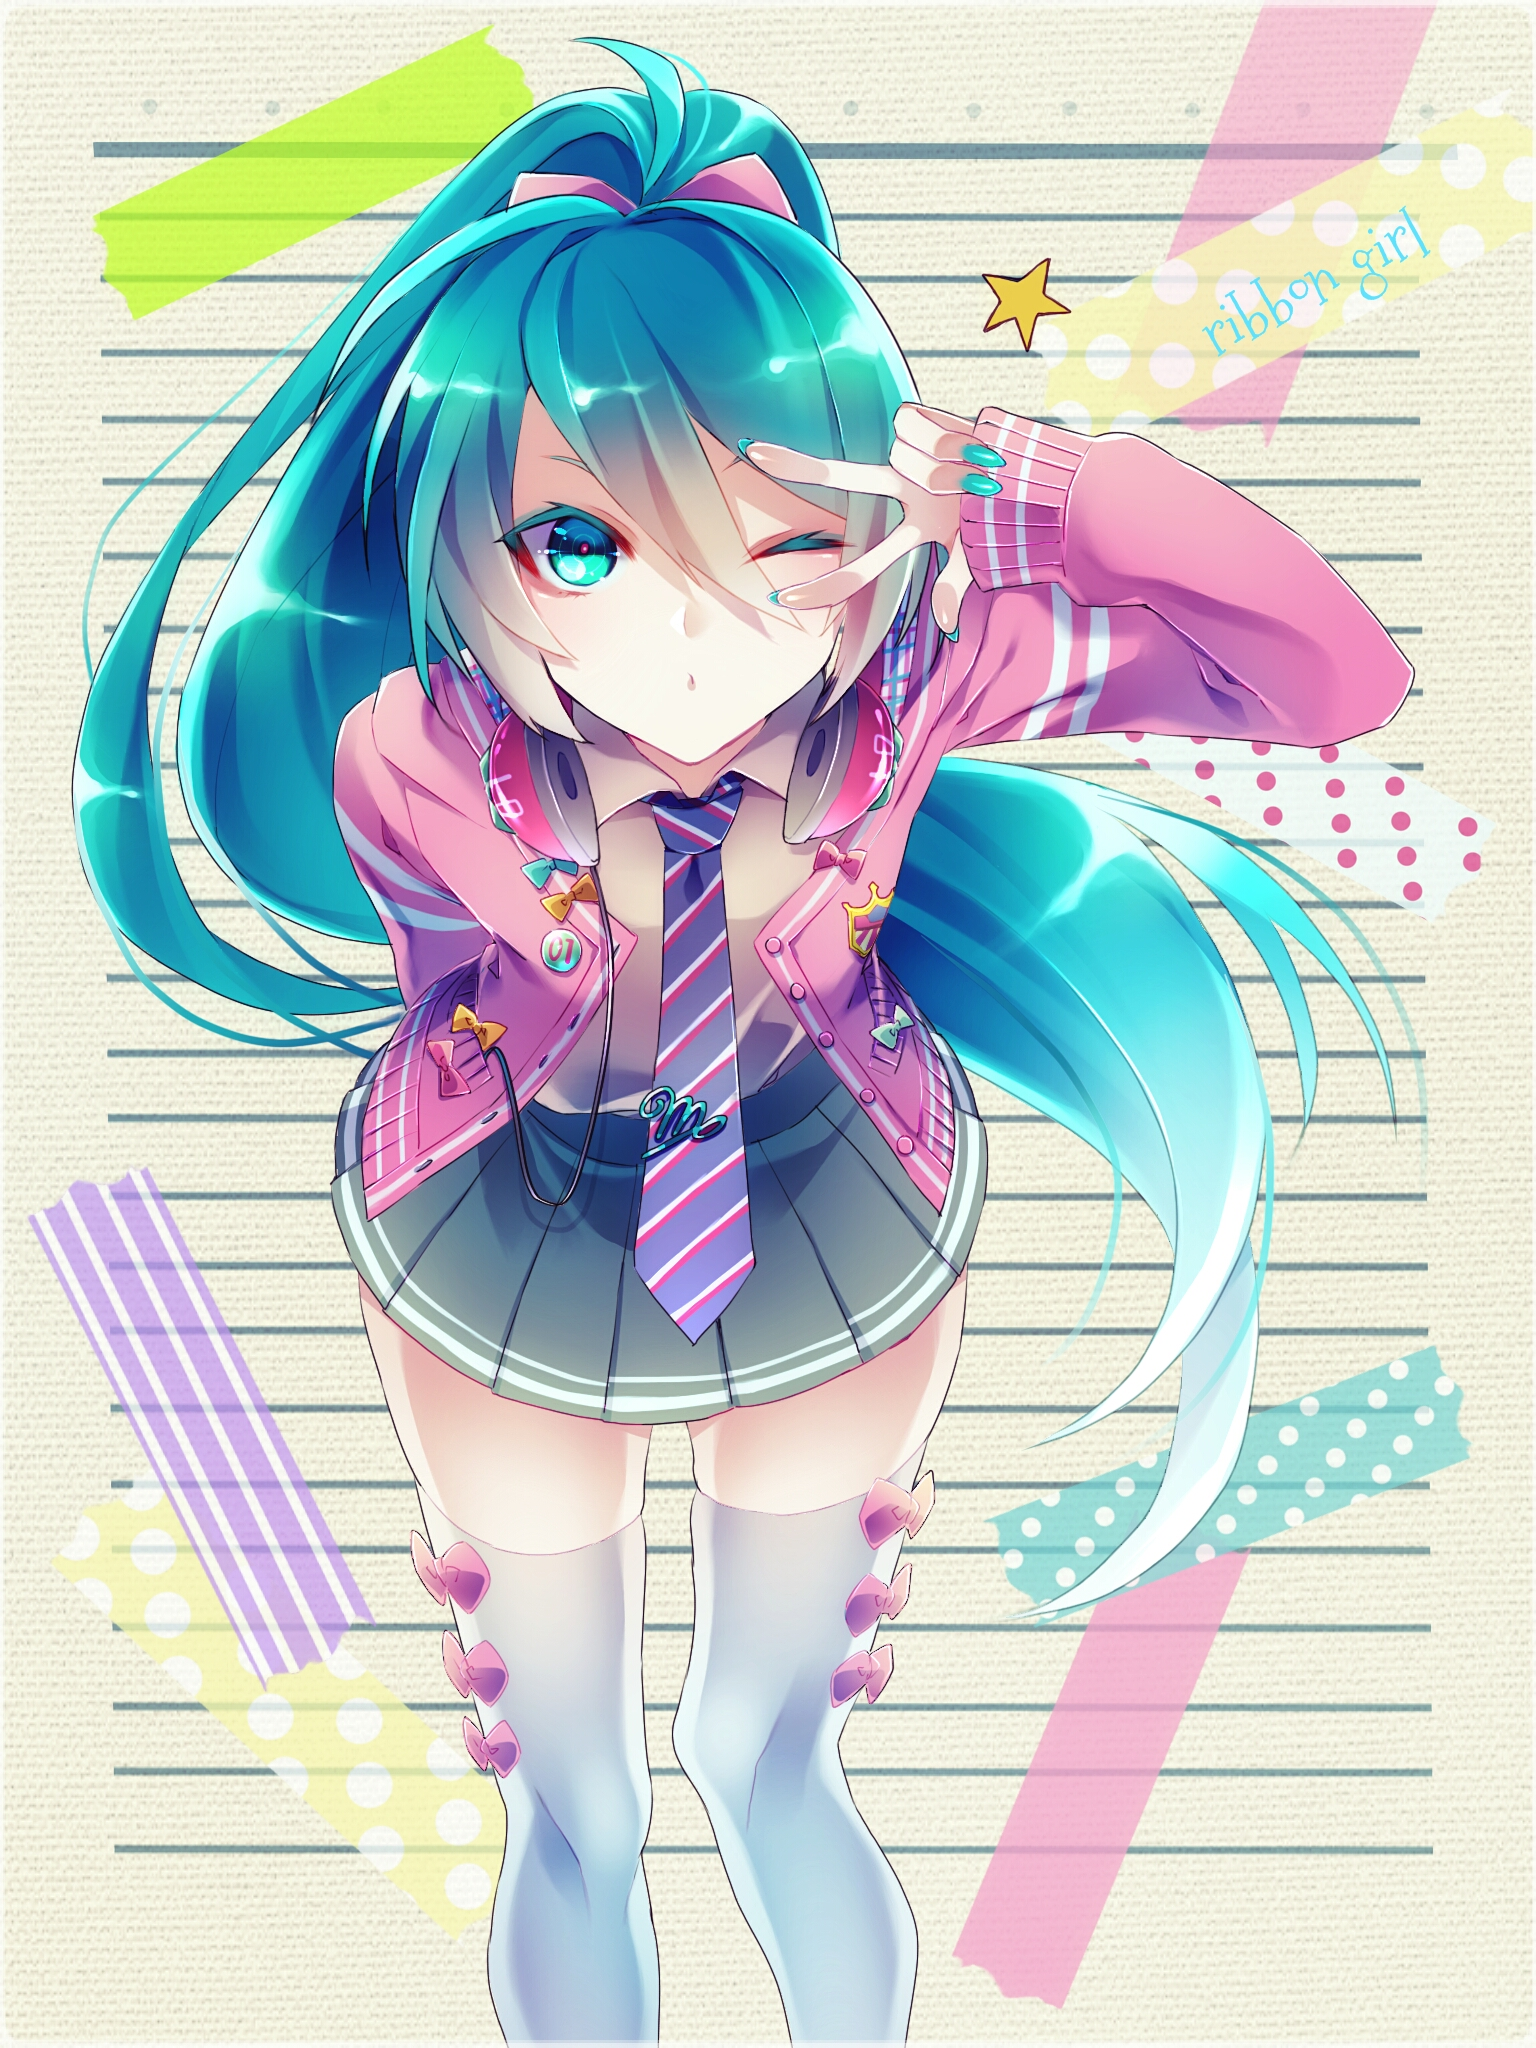 Ribbon Girl [Hatsune Miku, Vocaloid]